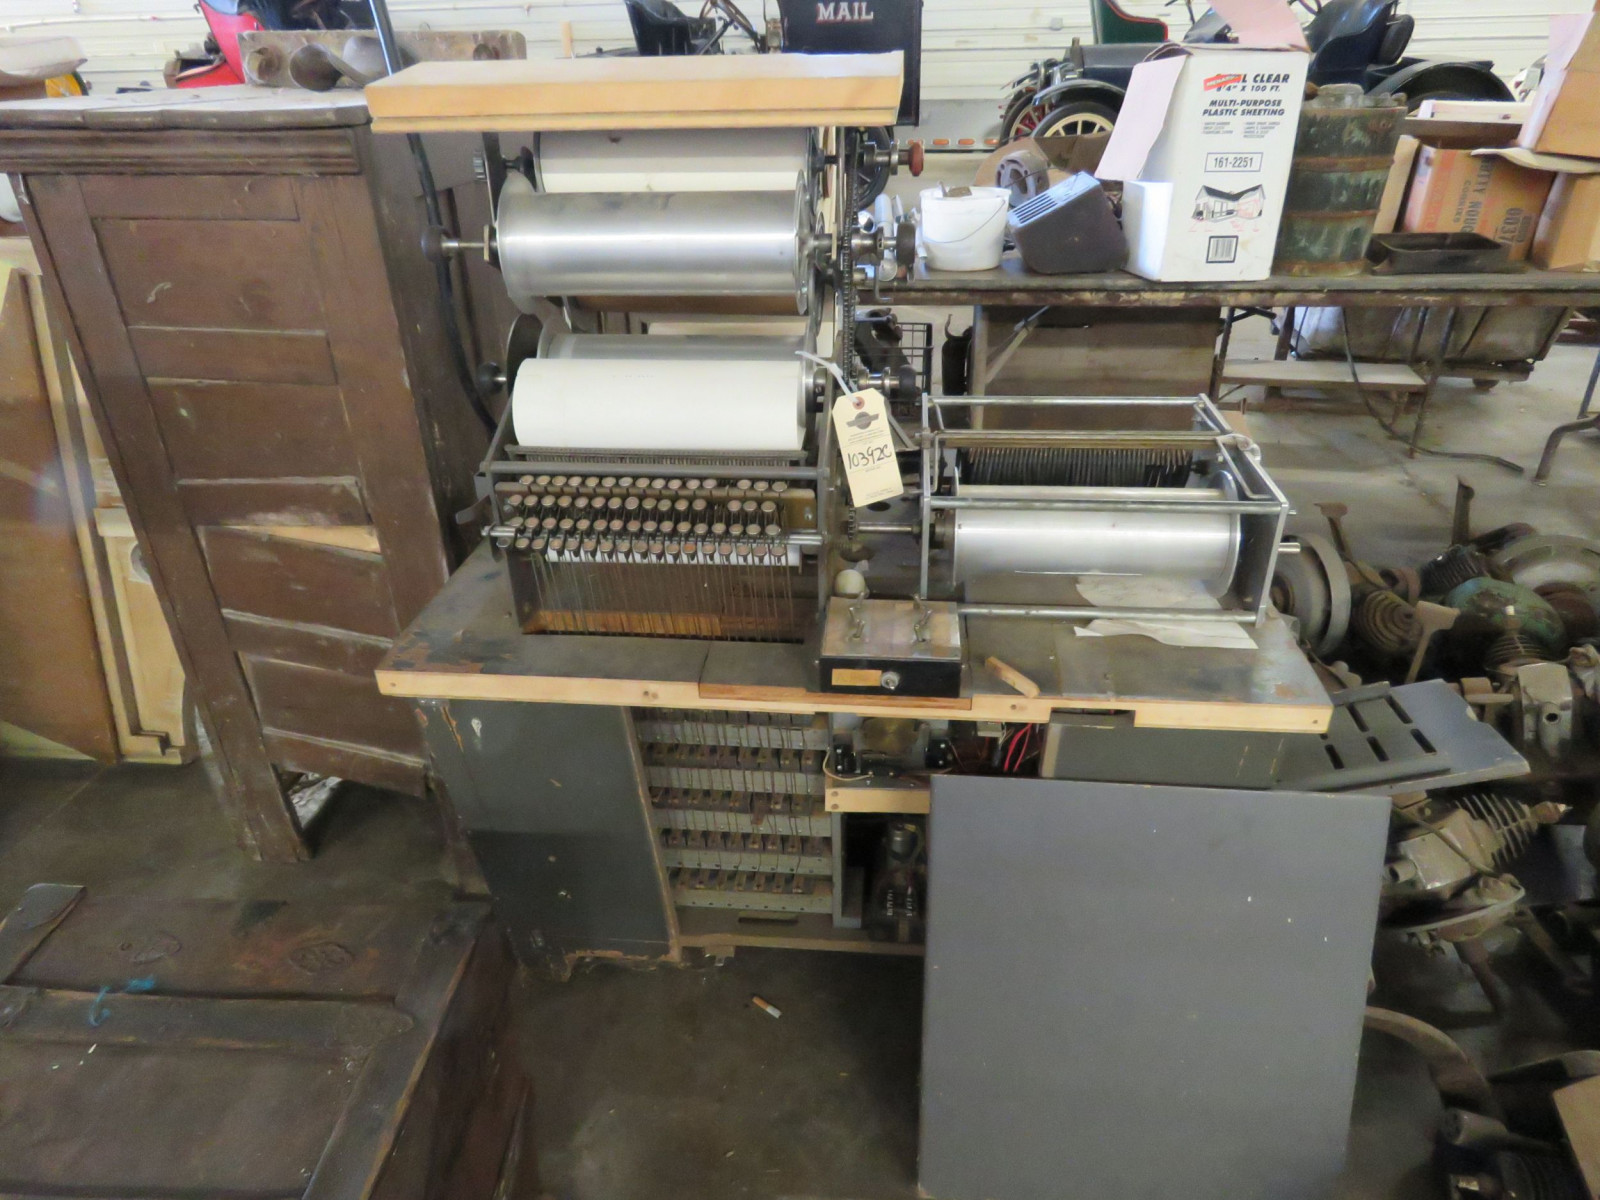 Vintage Roll Perforator Musicla Roll Making Machine - Image 2